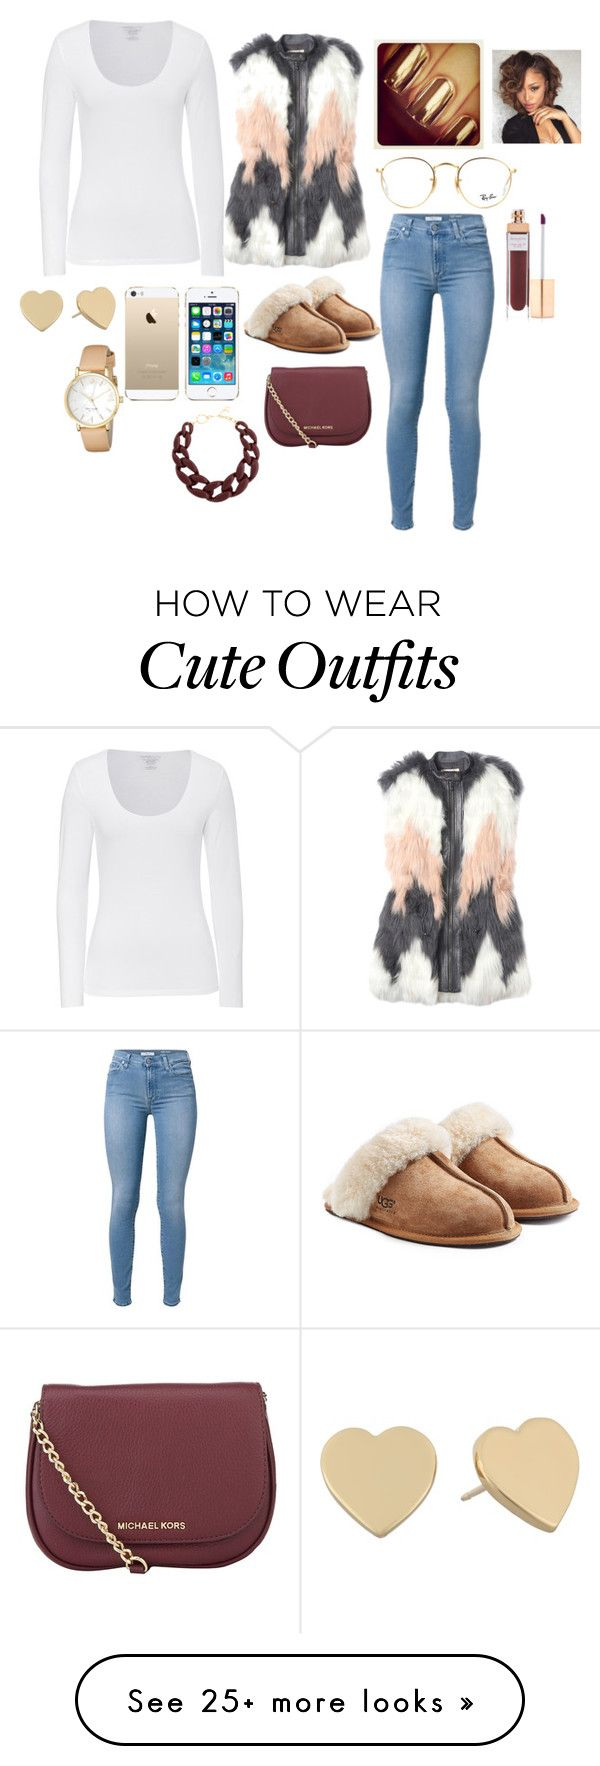 """mall ."" by naadabaddiest on Polyvore featuring Majestic, Rebecca Taylor, UGG Australia, MICHAEL Michael Kors, Ray-Ban, FingerPrint Jewellry, Kate Spade, DIANA BROUSSARD and Accessorize"